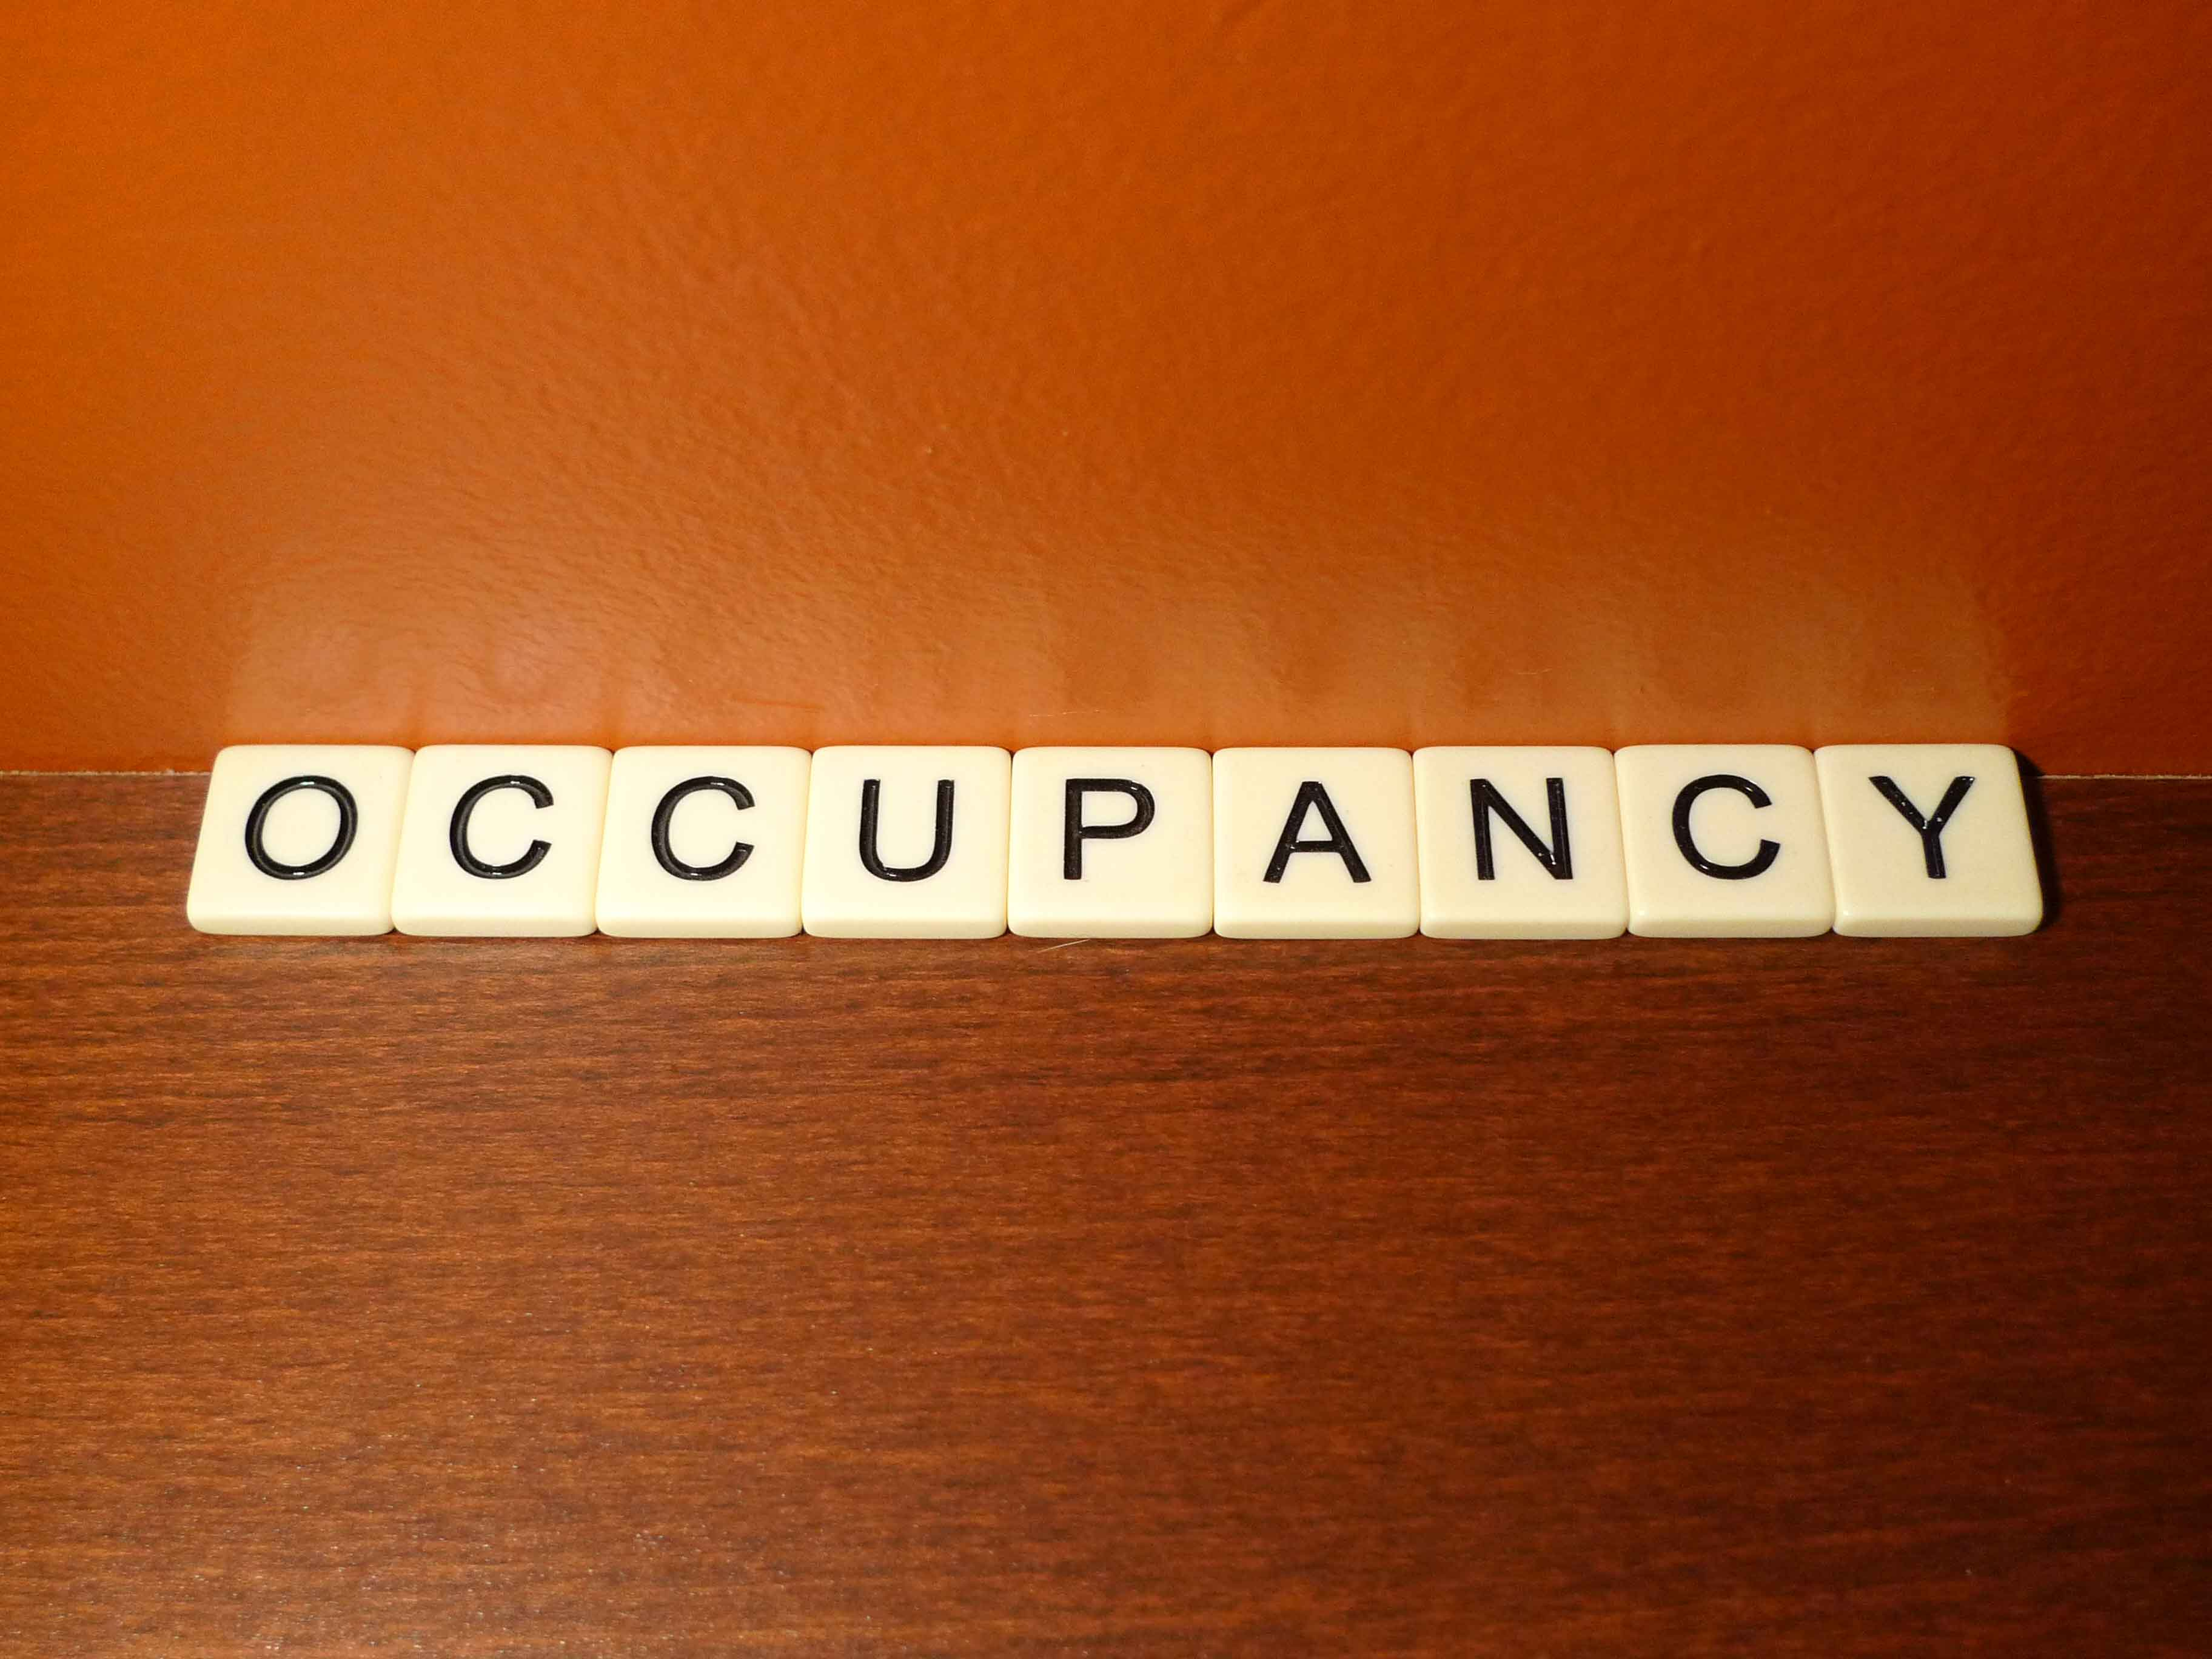 Occupancy Definition Profile Image